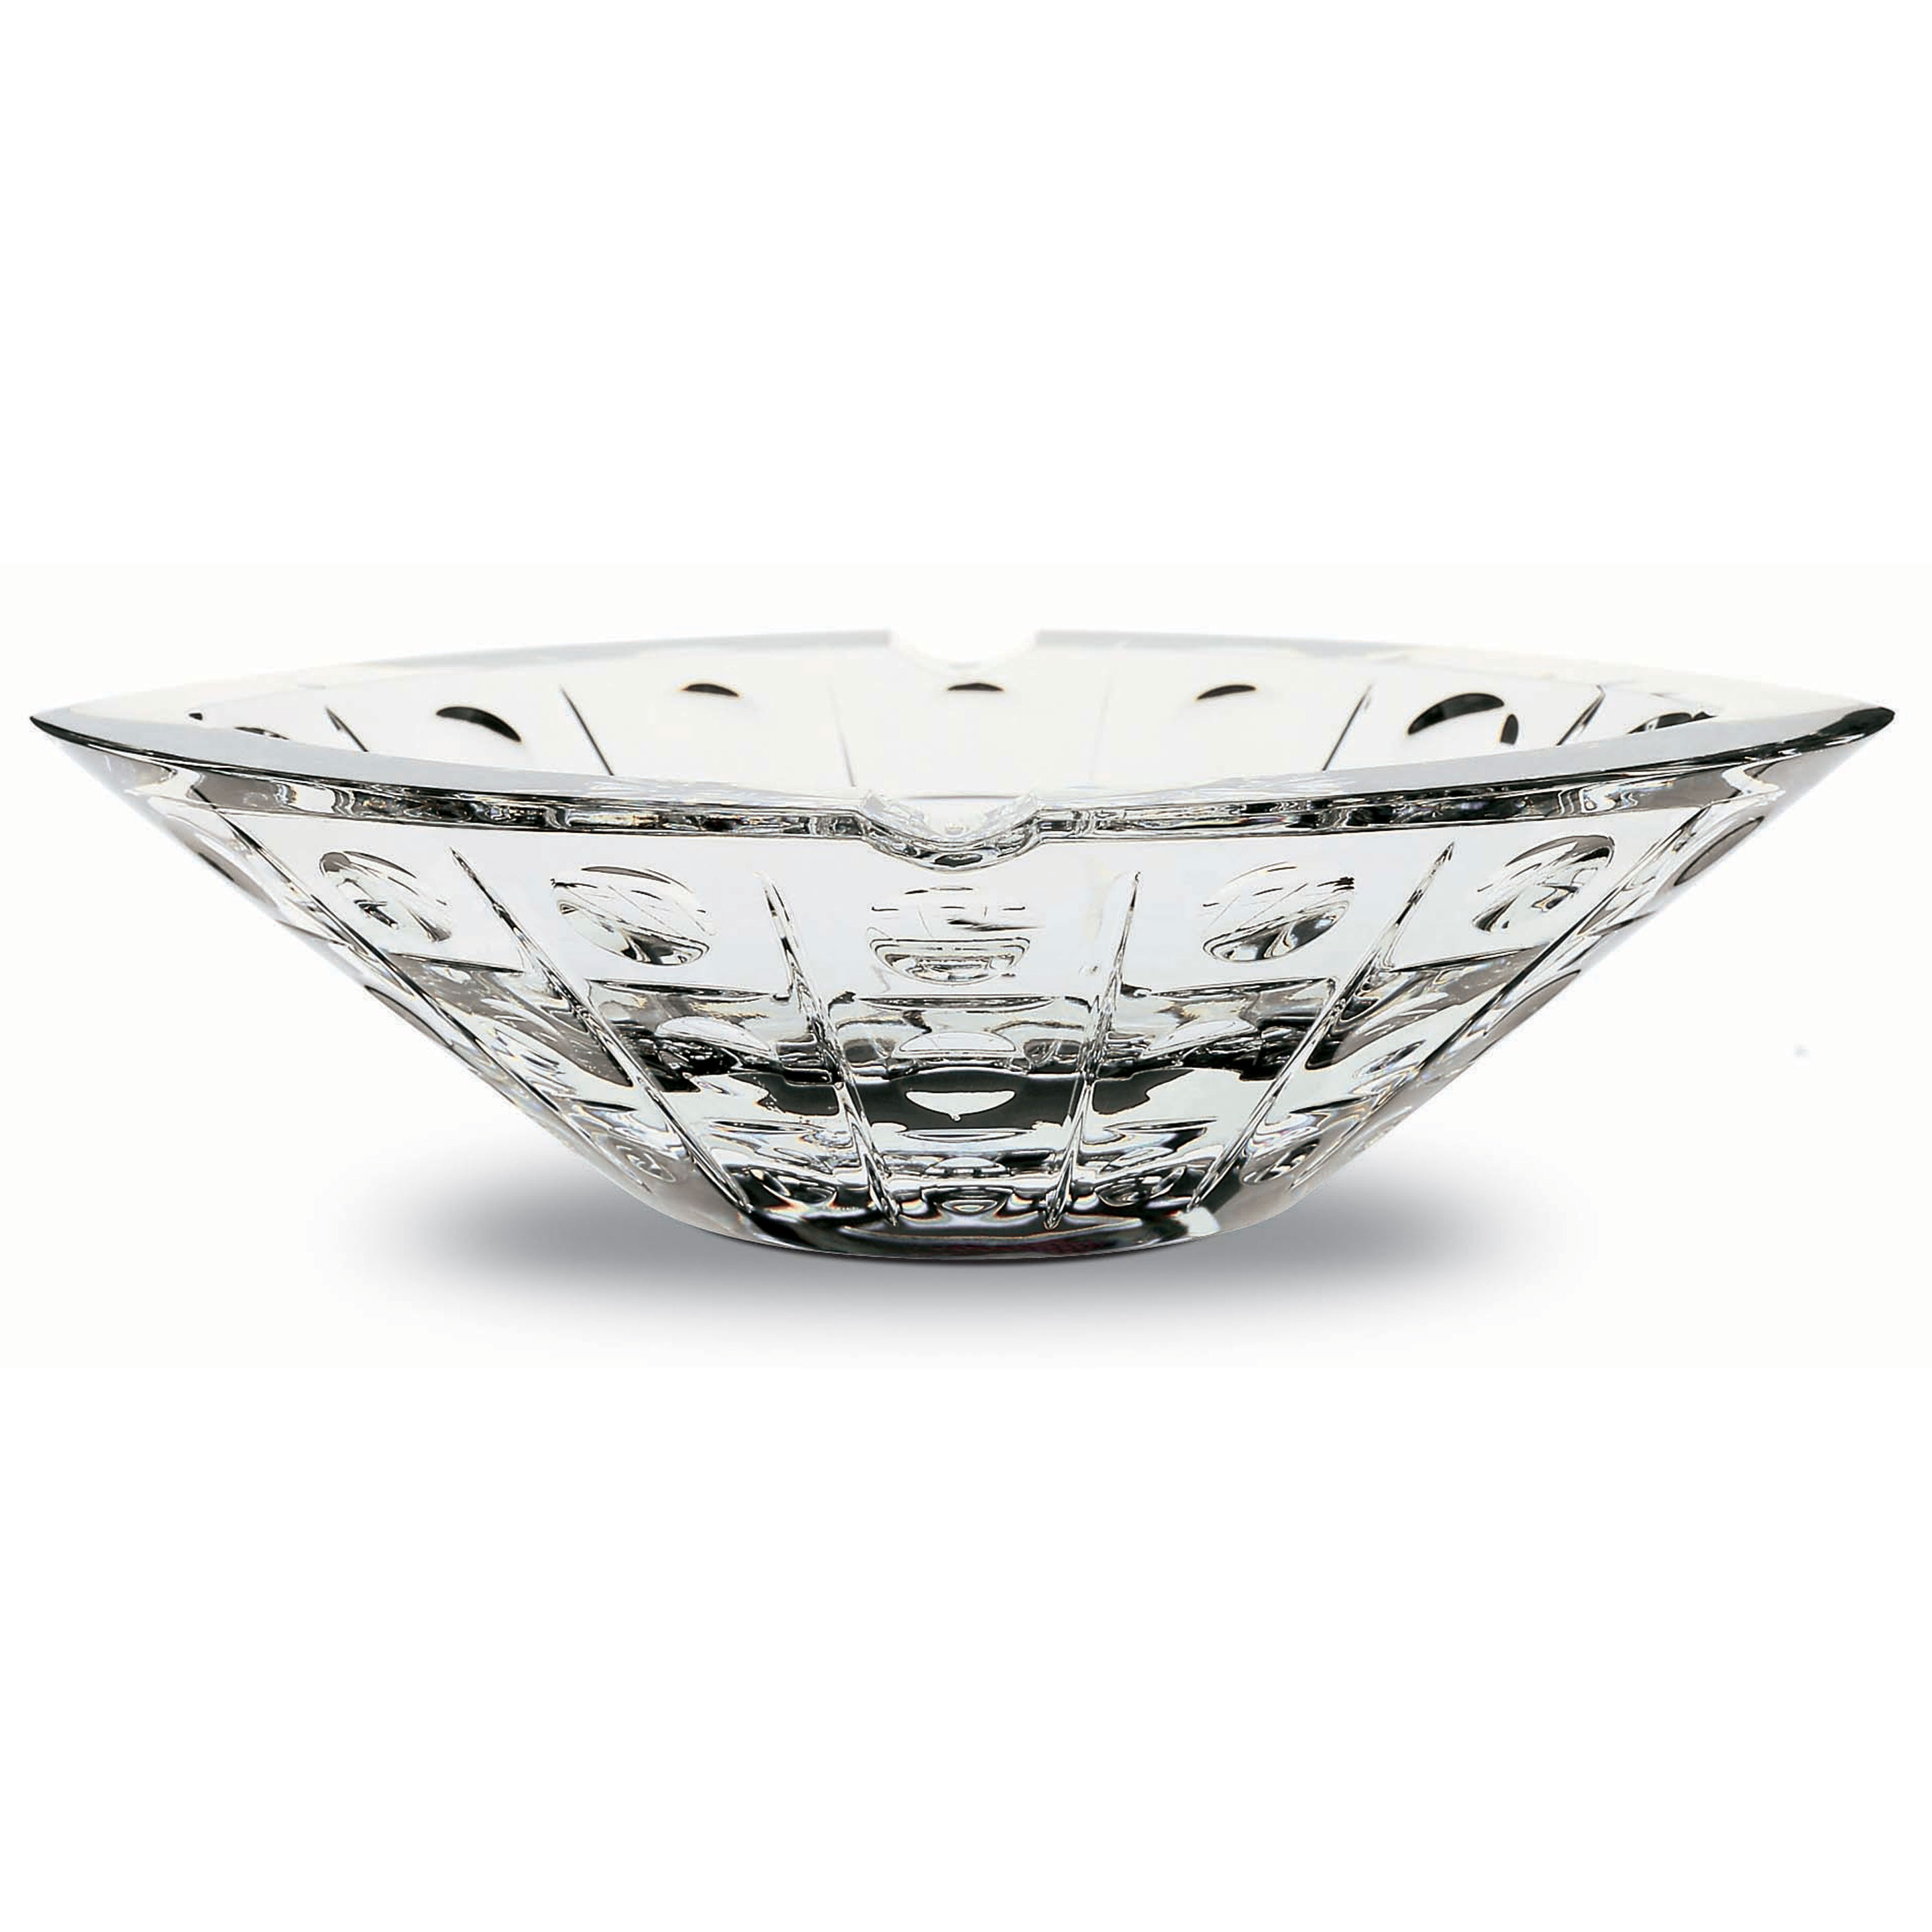 Baccarat Crystal, Equinoxe Ashtray